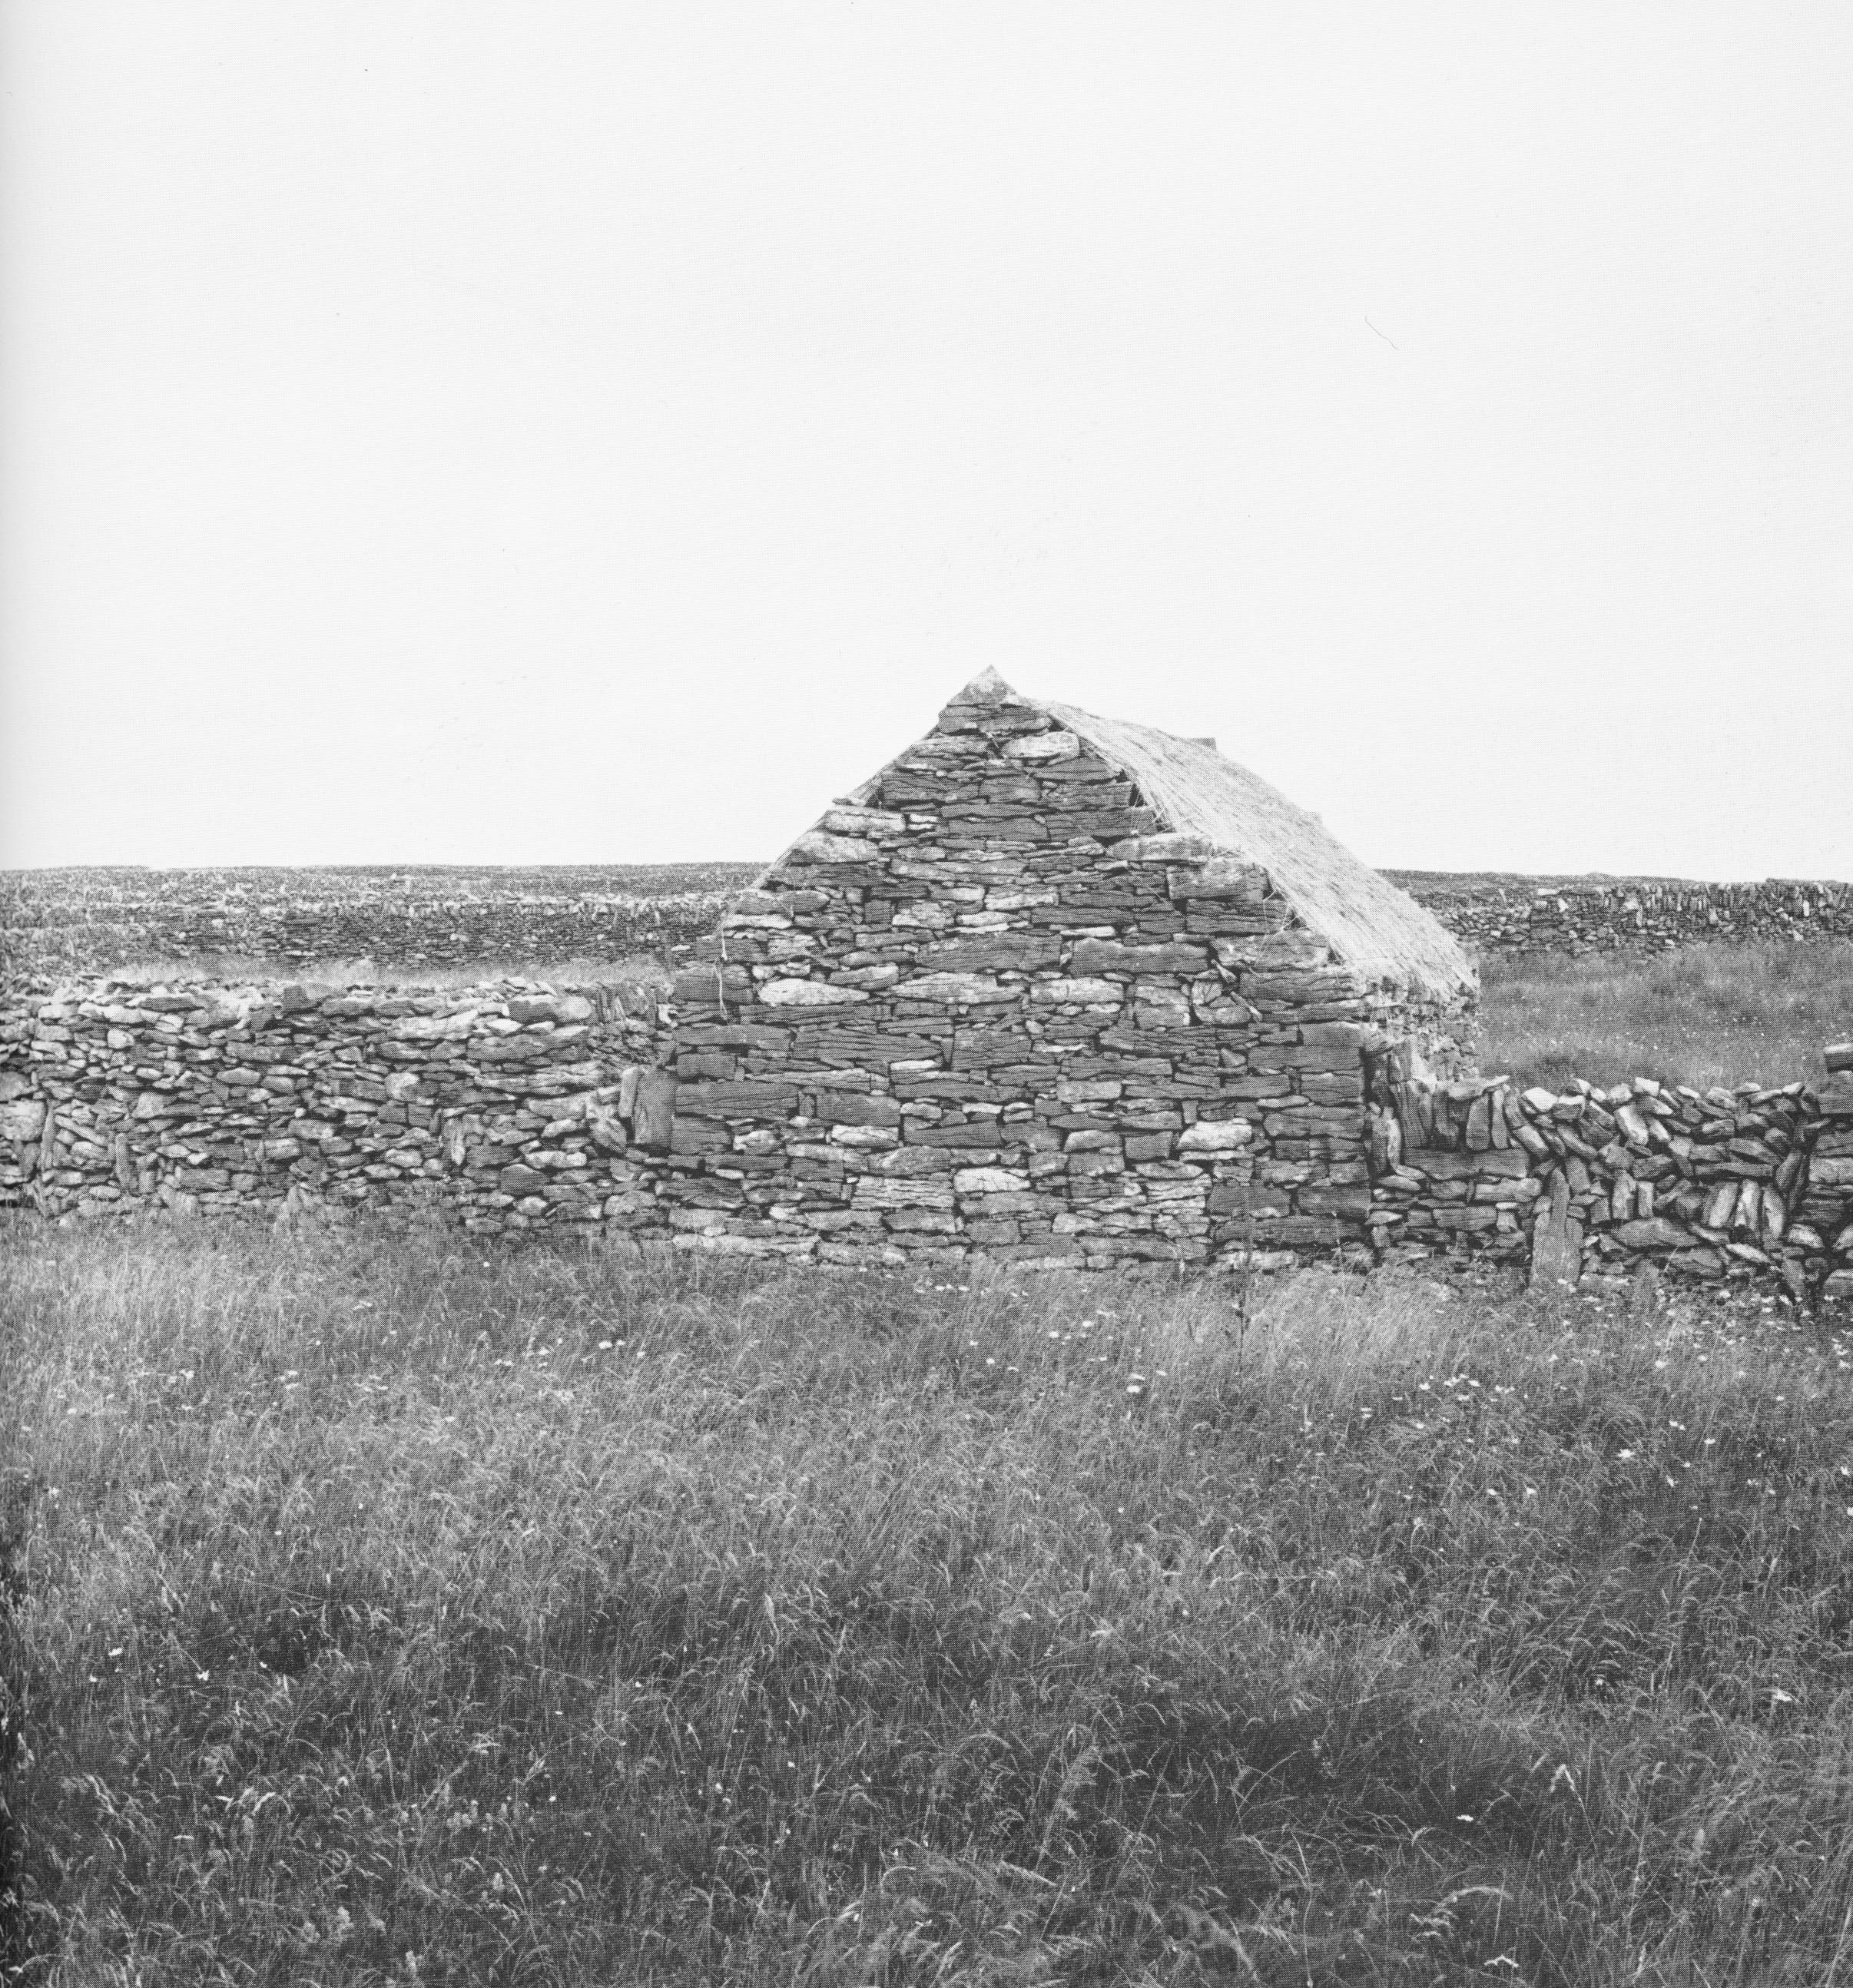 """Stone Shelters"", Edward Allen, MIT Press, 1969, S. 138, Figure 1: ""A simple two-story fields shelter of vaulted stone."